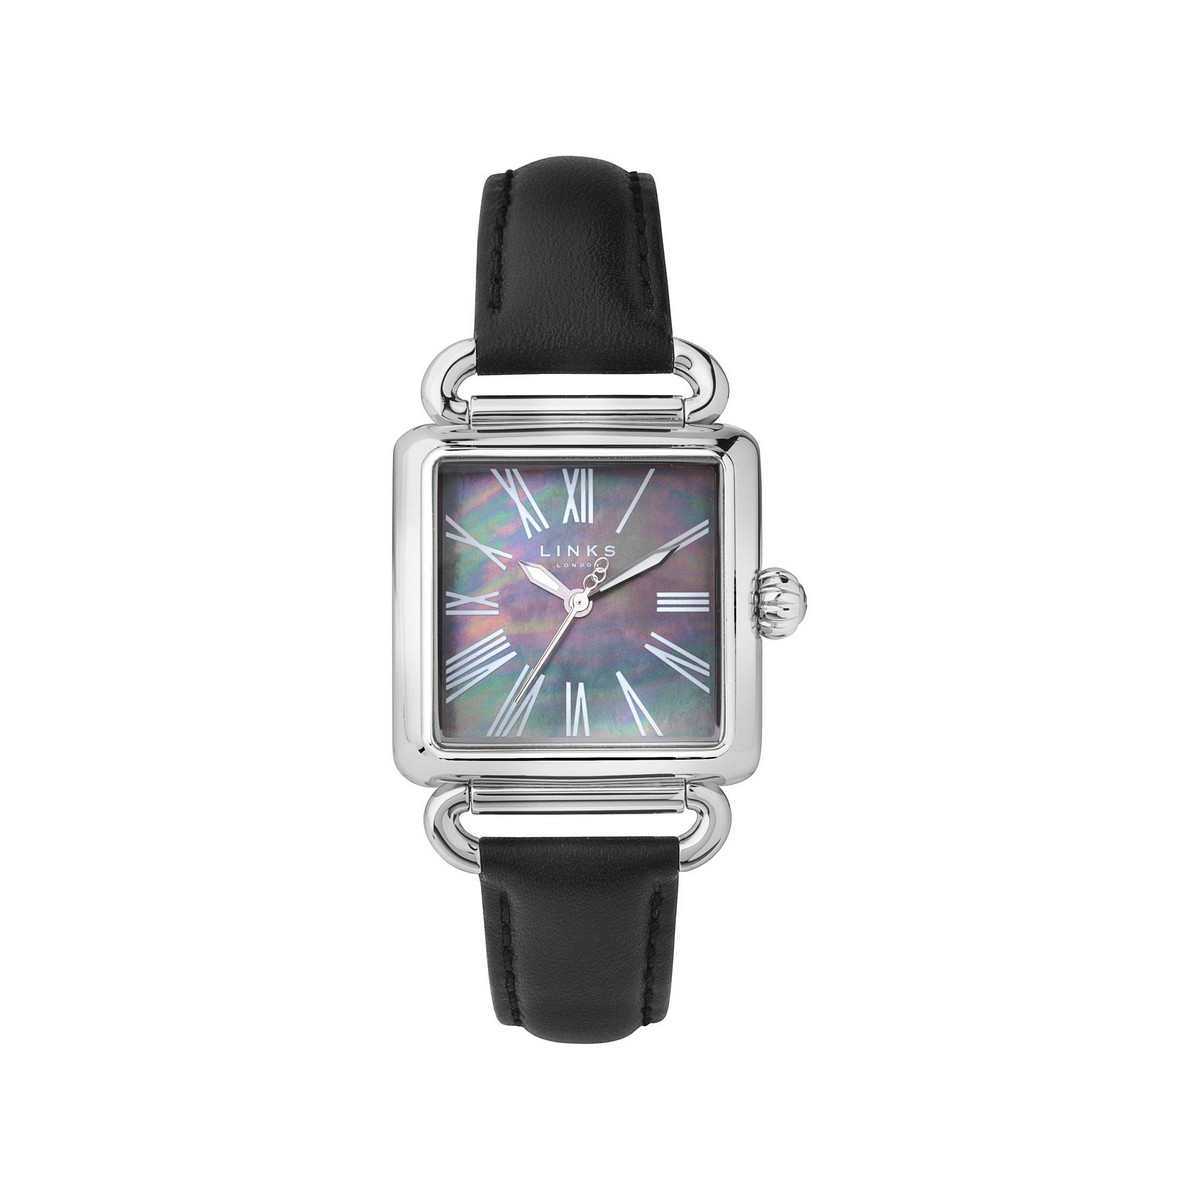 Links of London 6010.0425 Driver SQ Ladies Watch